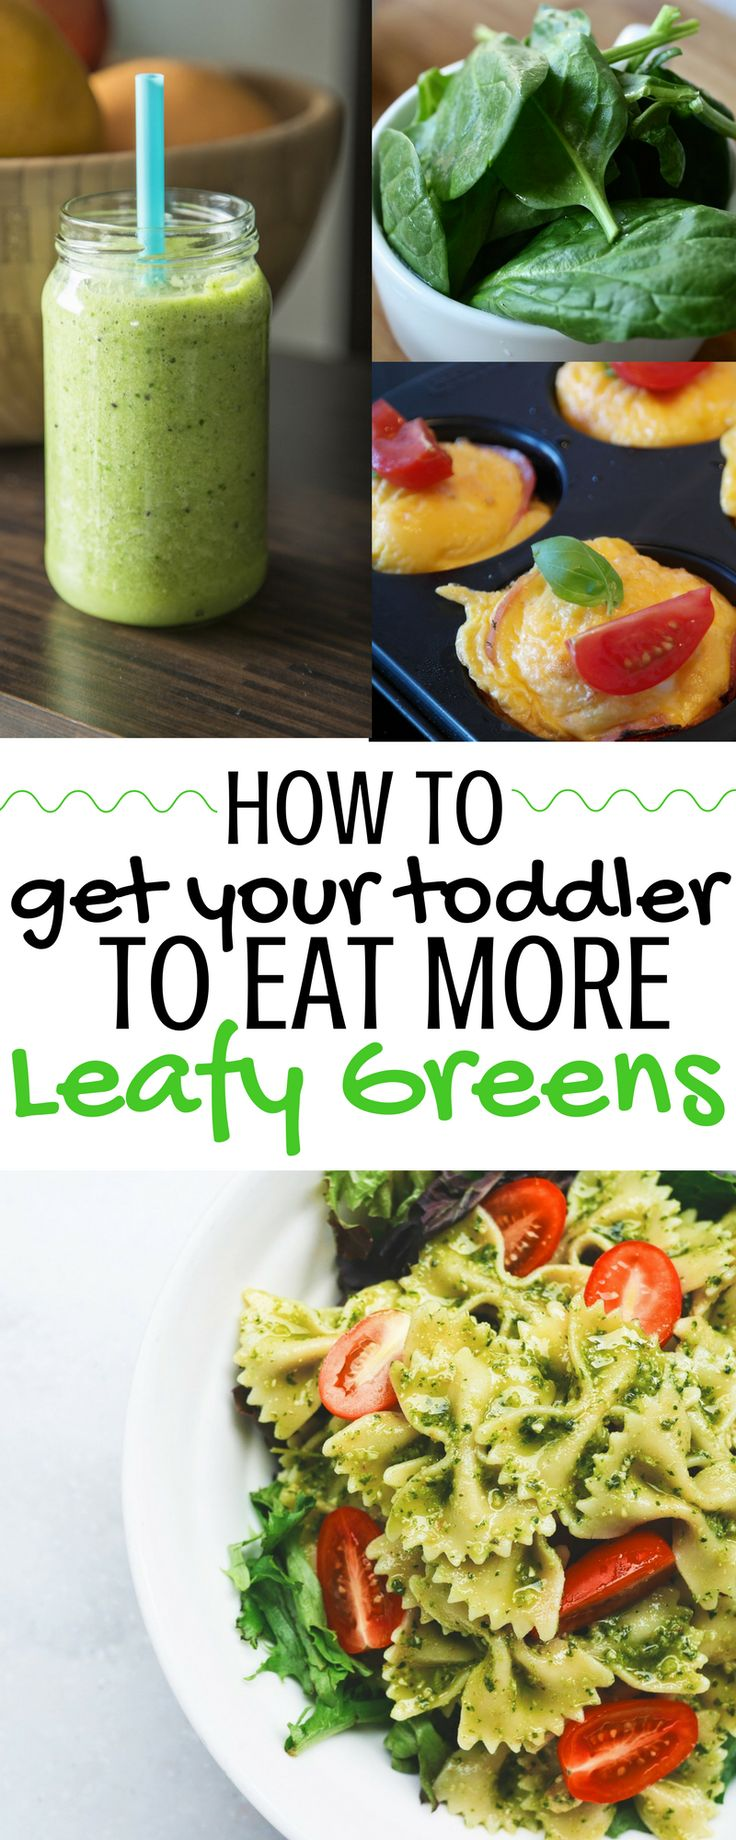 How to Get Your Toddler to Eat More Greens! Getting toddlers to eat greens can be tough. Try some of these easy and yummy ideas to get your picky toddler eating more greens. Click for tons of ideas!